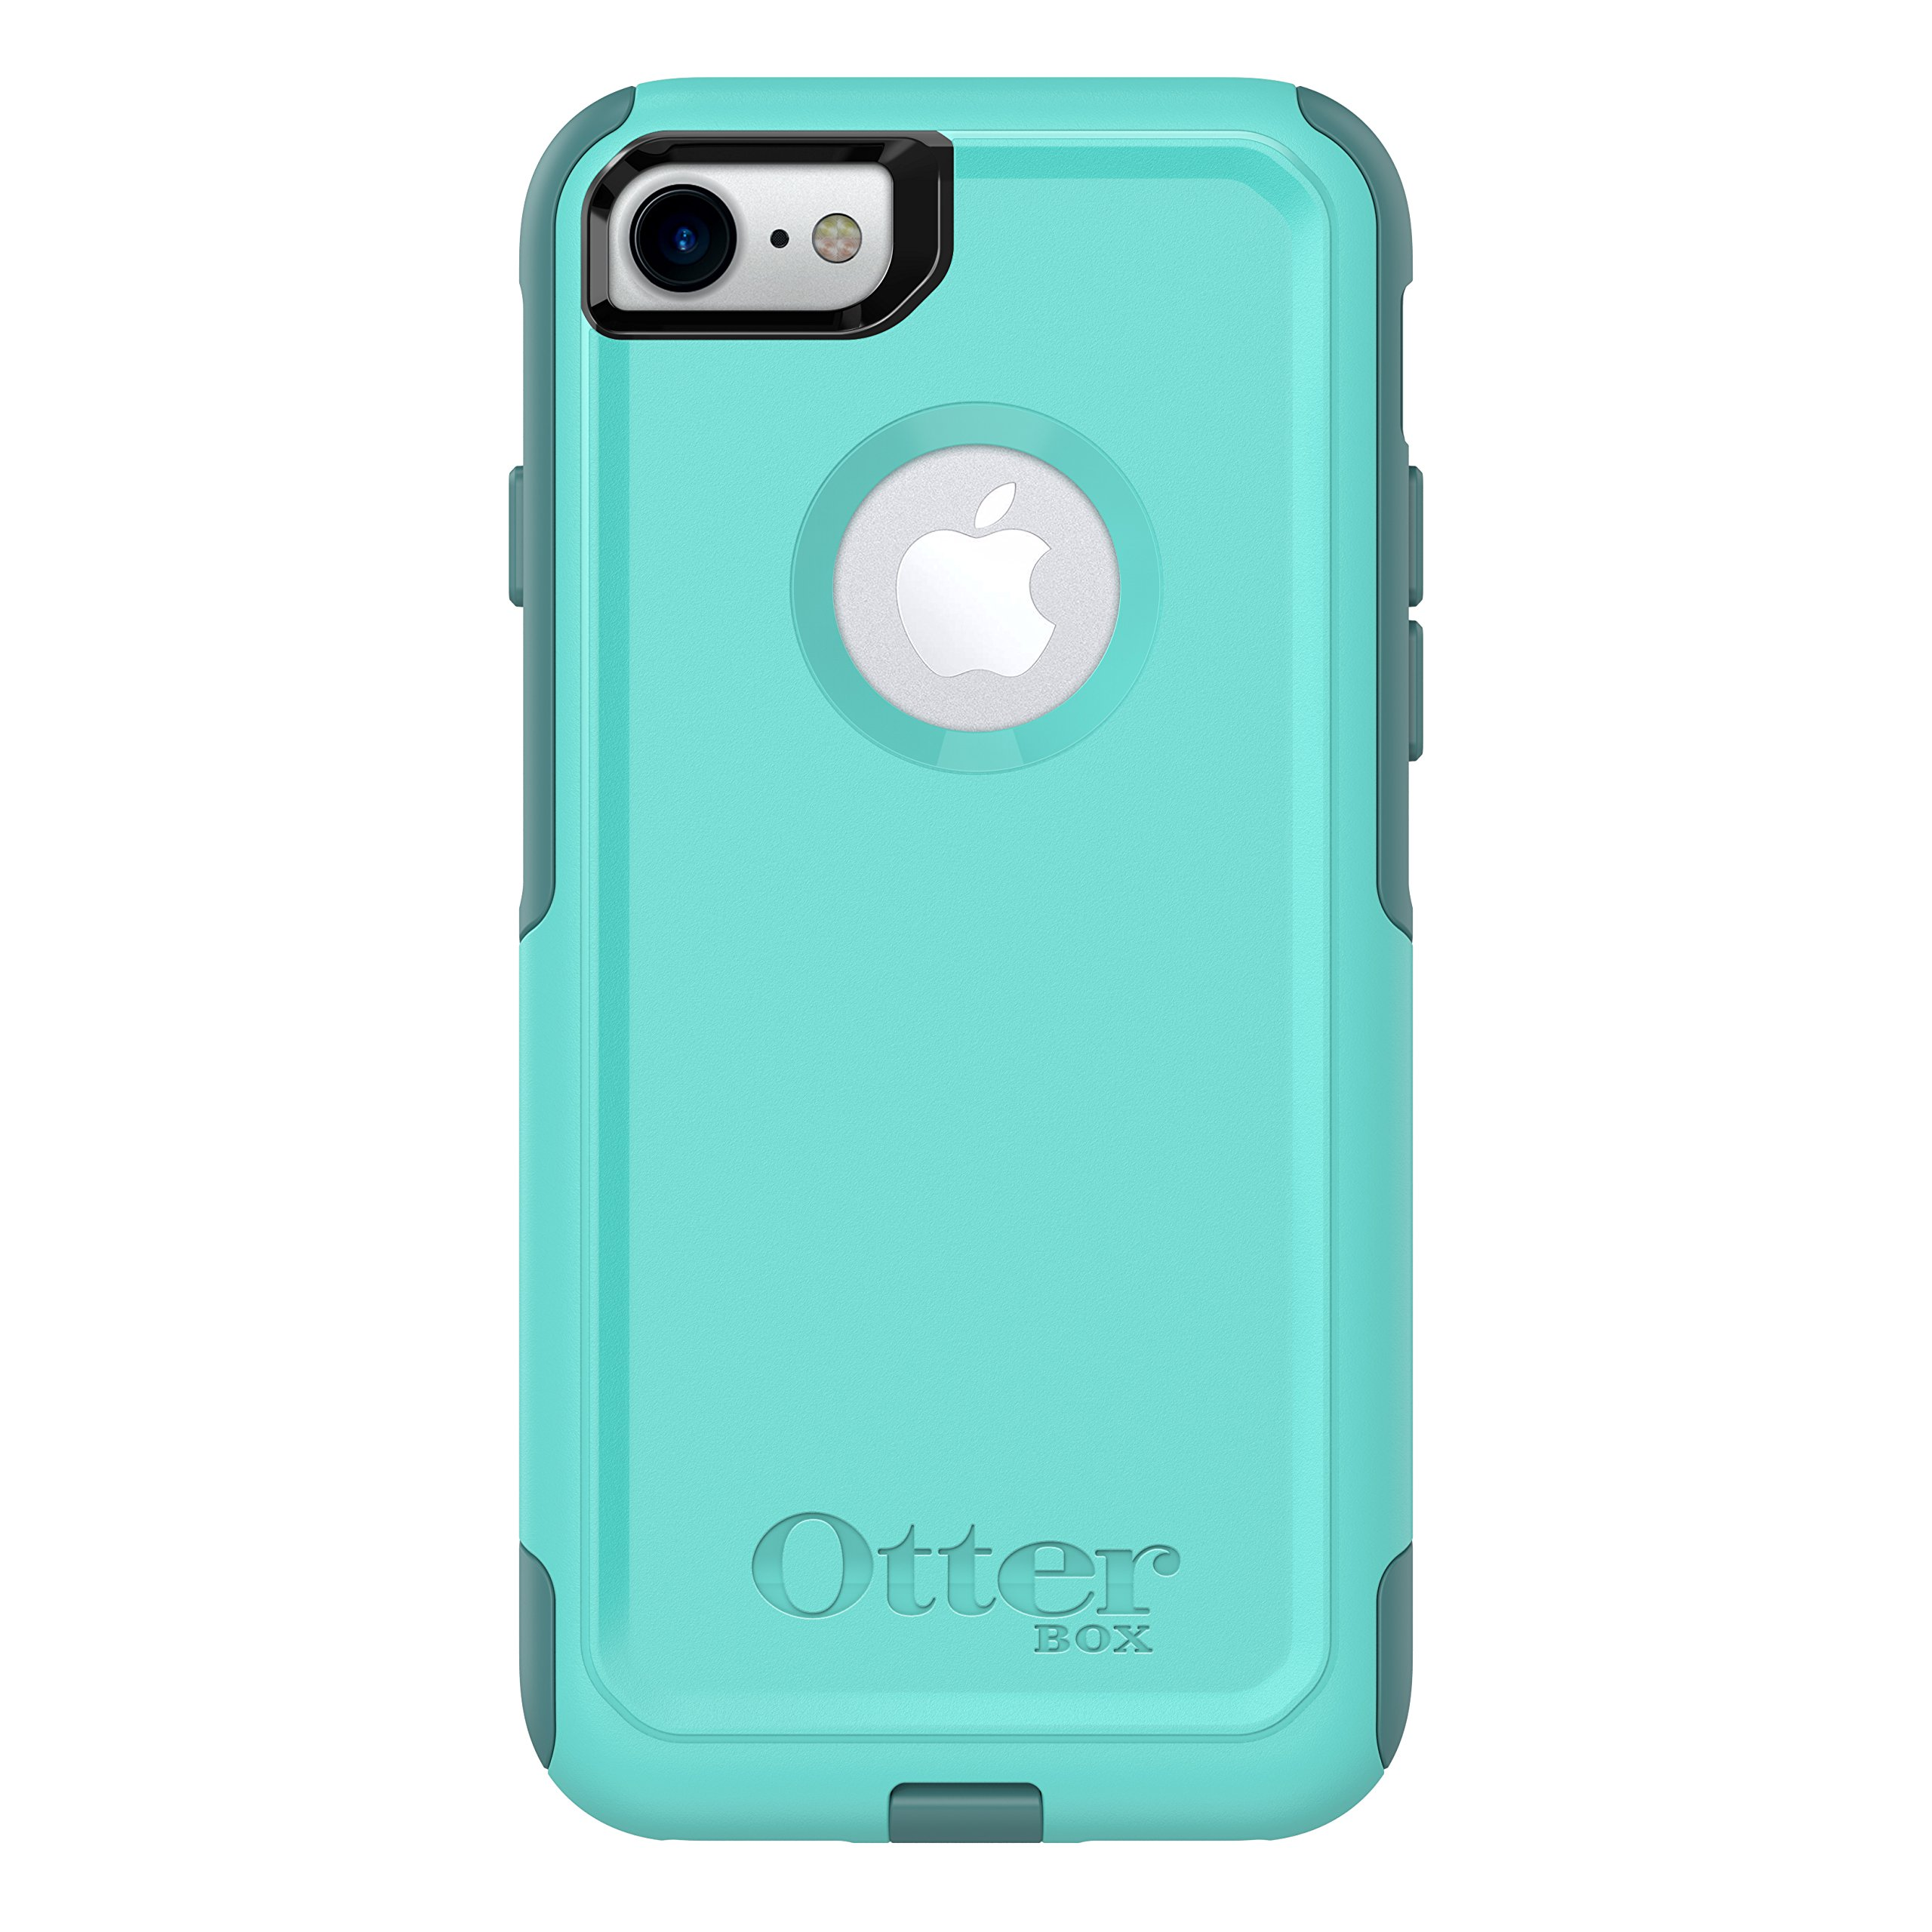 OtterBox COMMUTER SERIES Case for iPhone 8 & iPhone 7 (NOT Plus) - AQUA MINT WAY (AQUA MINT/MOUNTAIN RANGE GREEN)